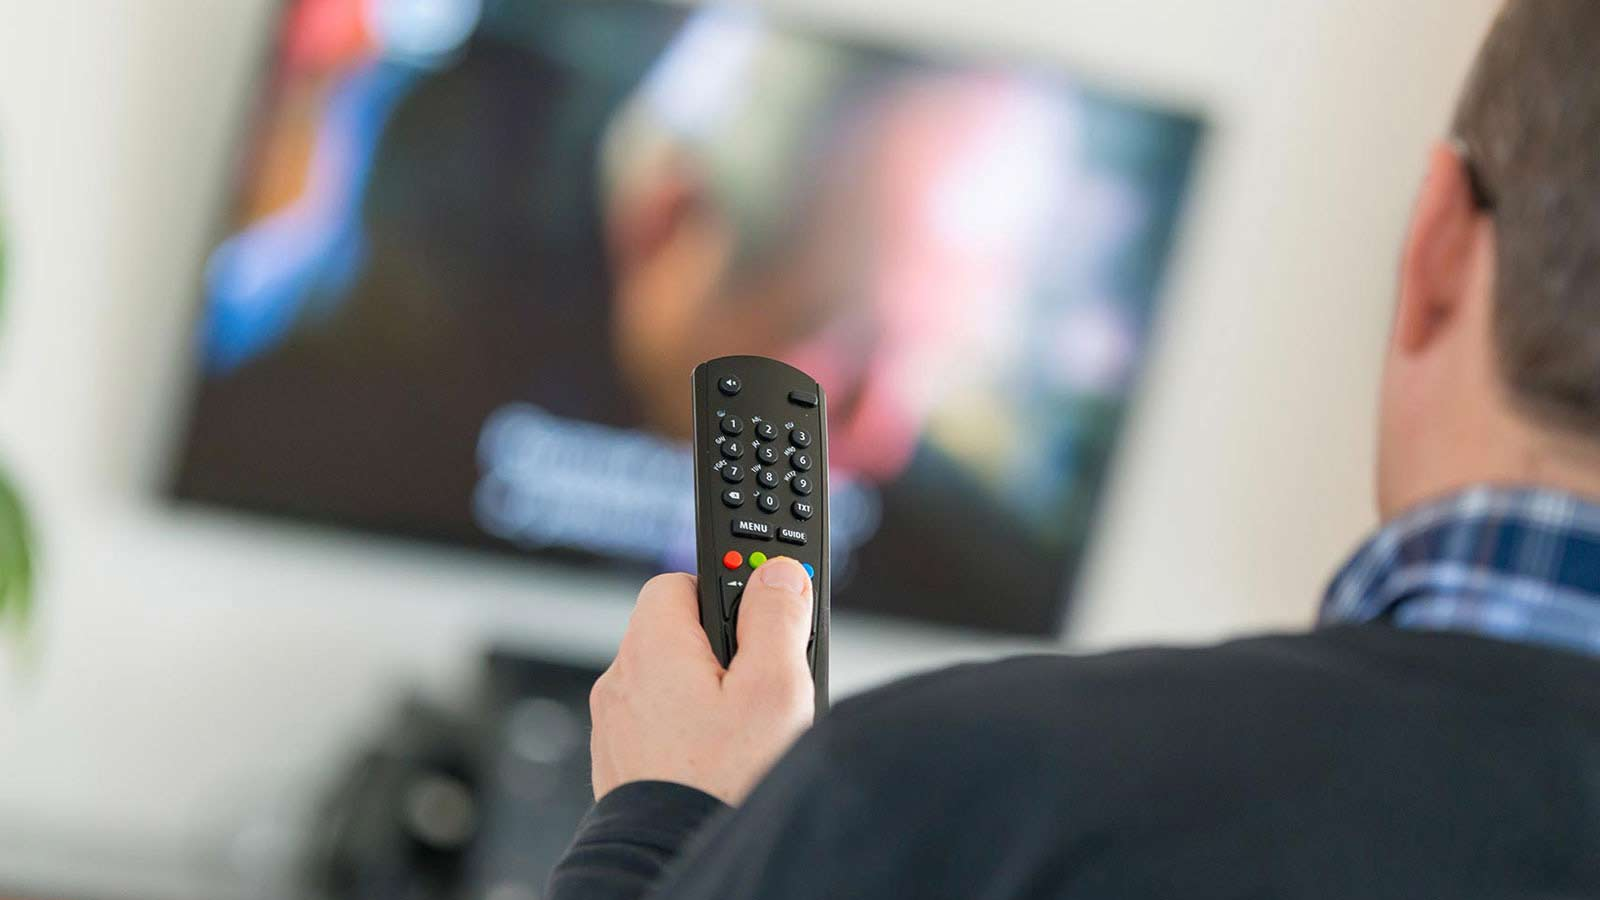 Man watching Pay TV channel